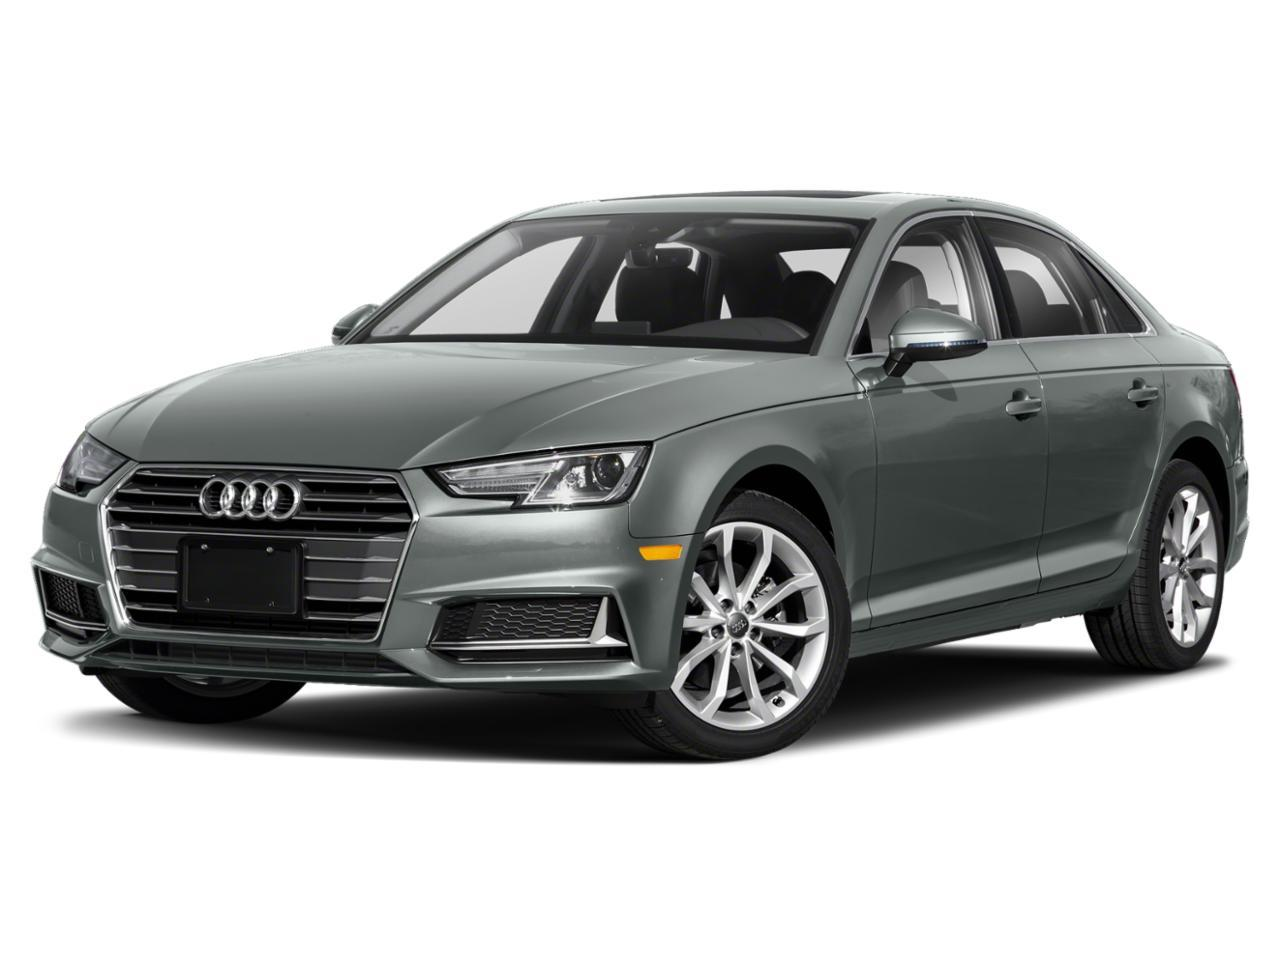 2019 Audi A4 Vehicle Photo in Allentown, PA 18103